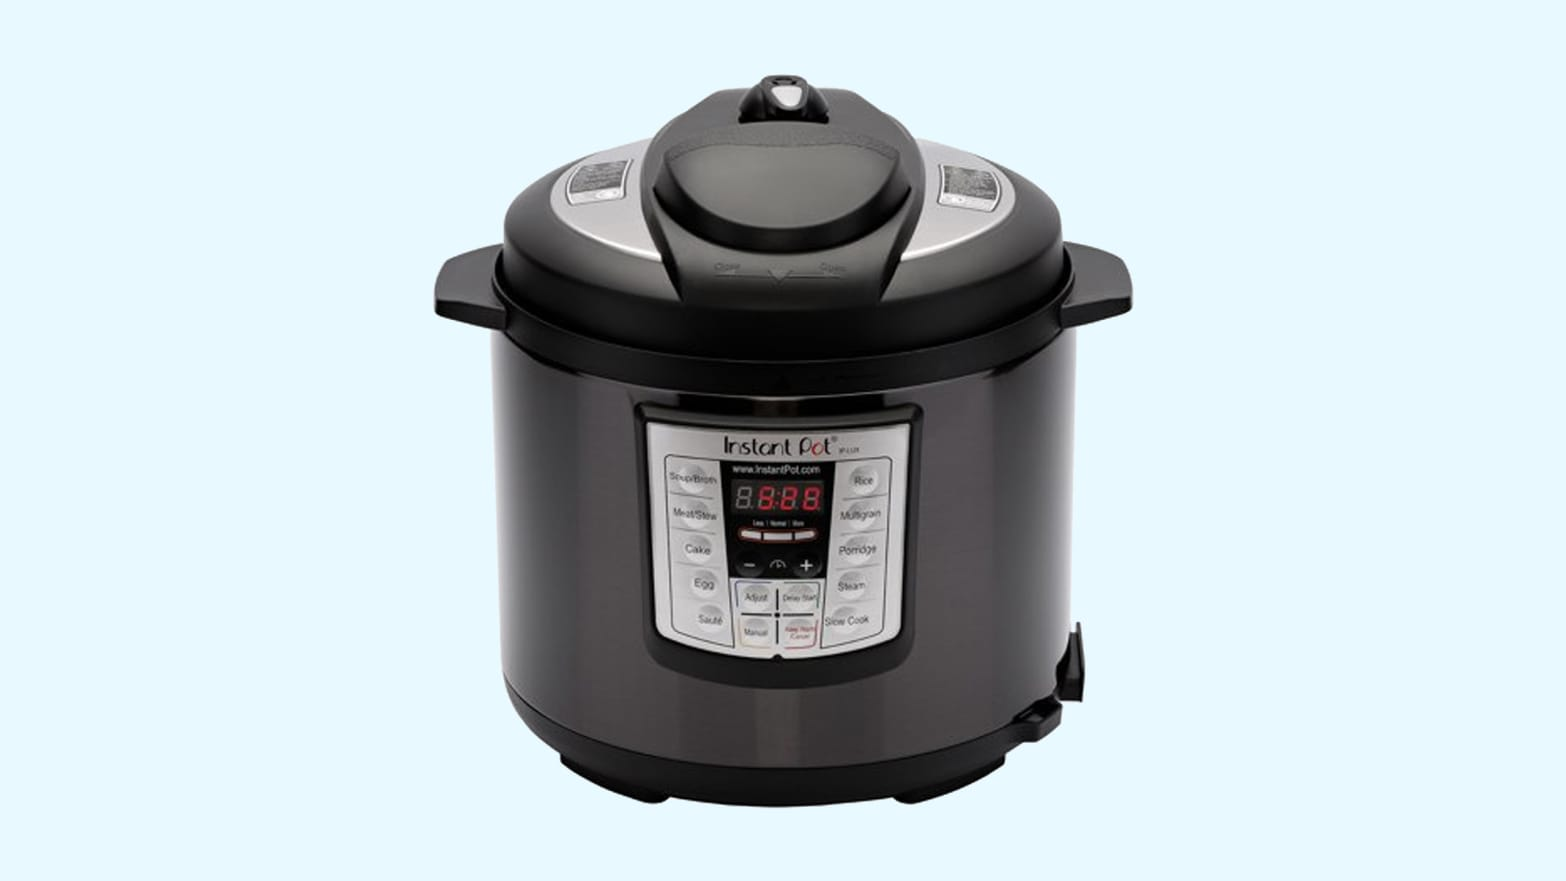 Shop the InstantPot LUX60 In Black Stainless Steel